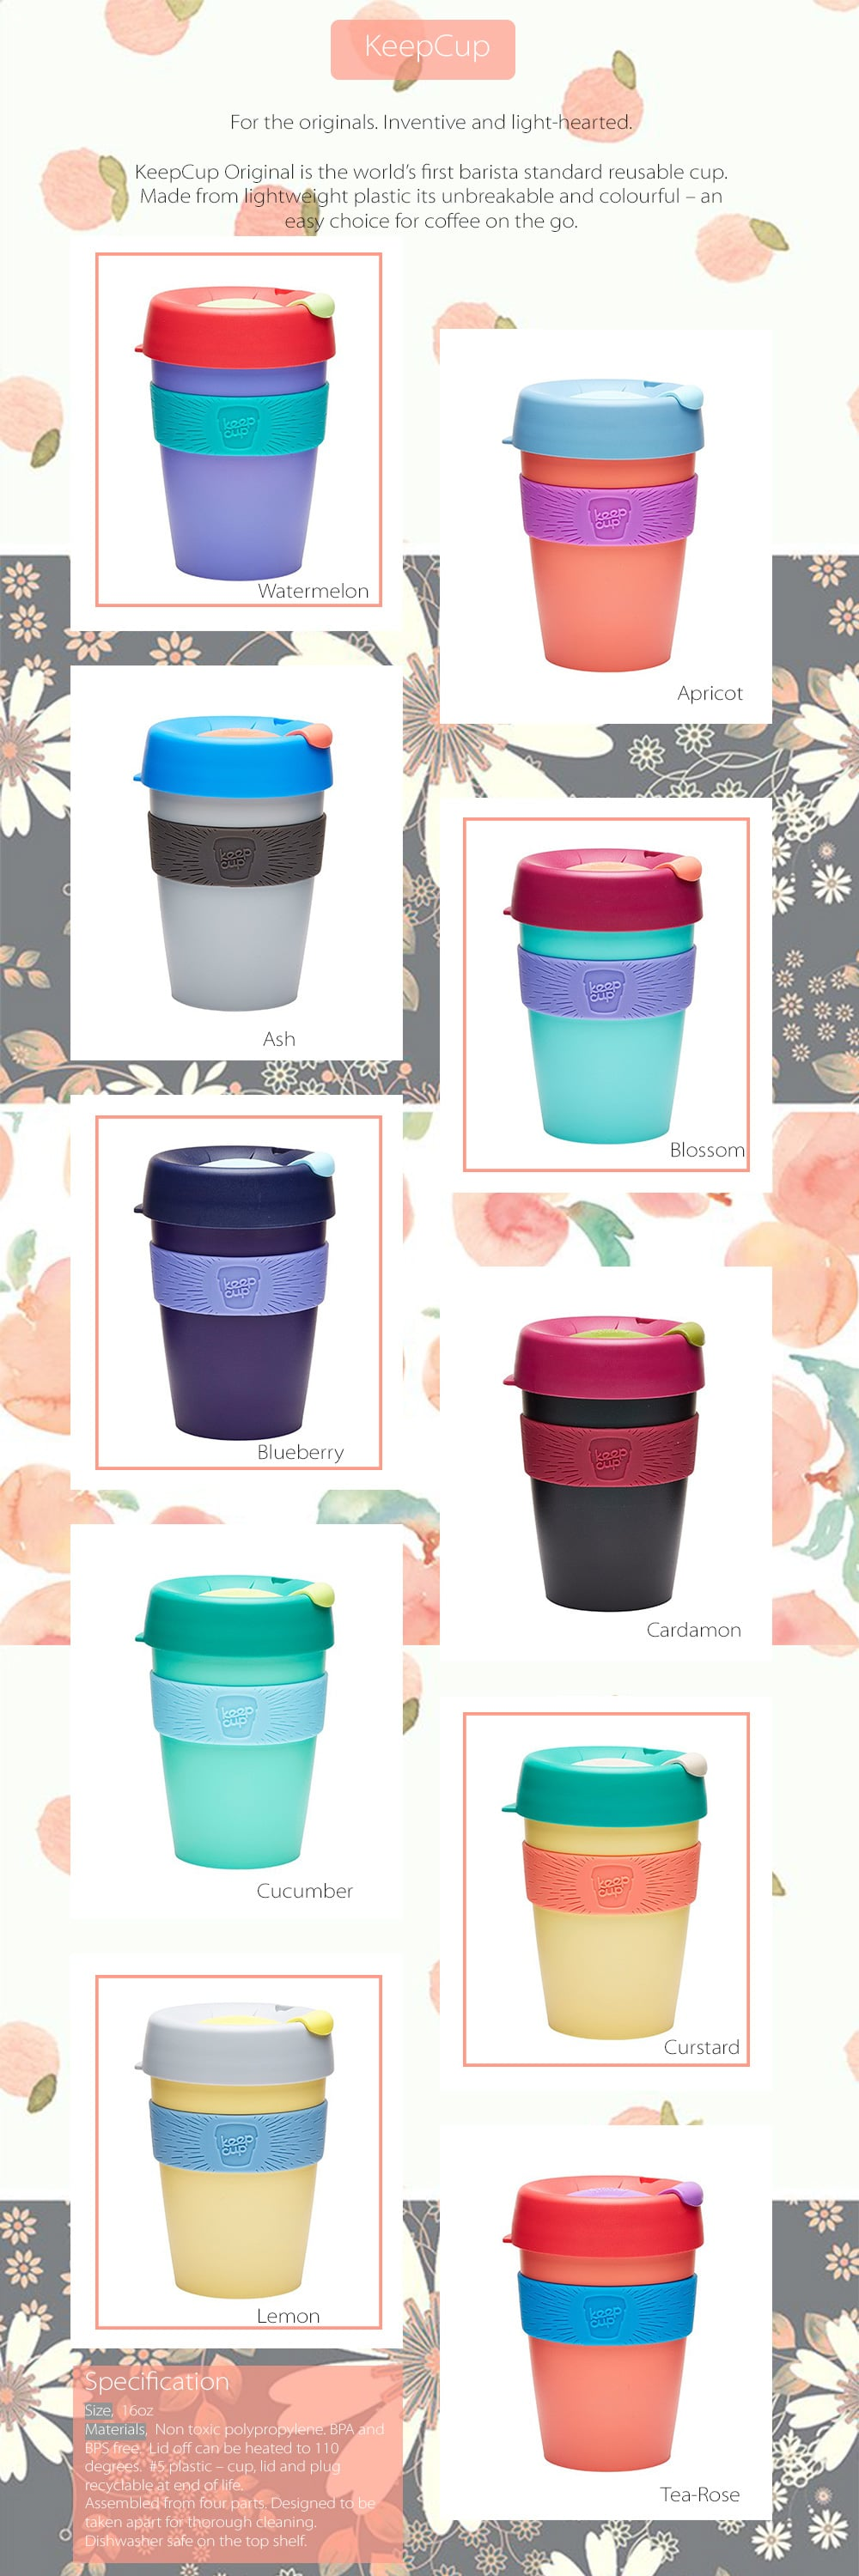 KeepCup Original World's First Barista Sandard Reusable Cup